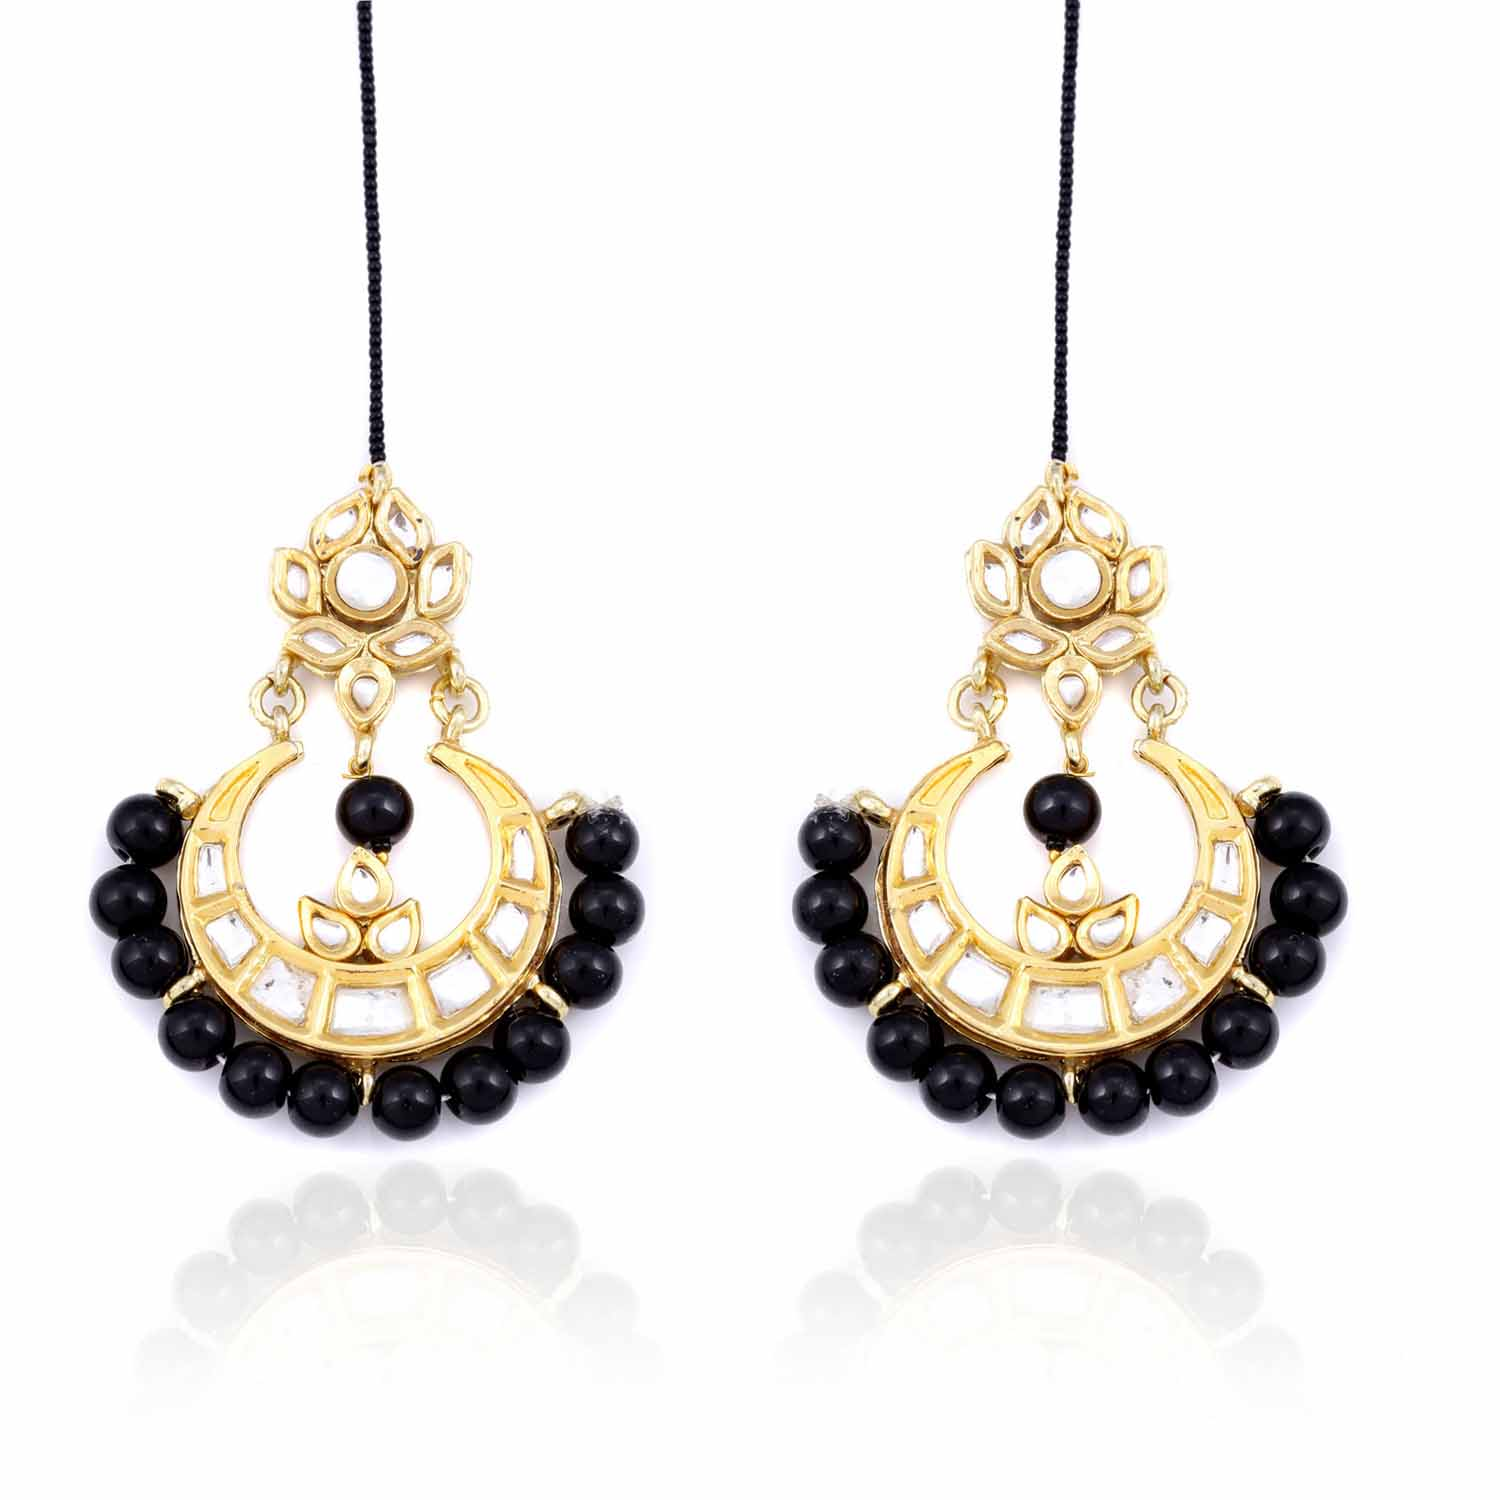 Black Beads Chandelier Earrings